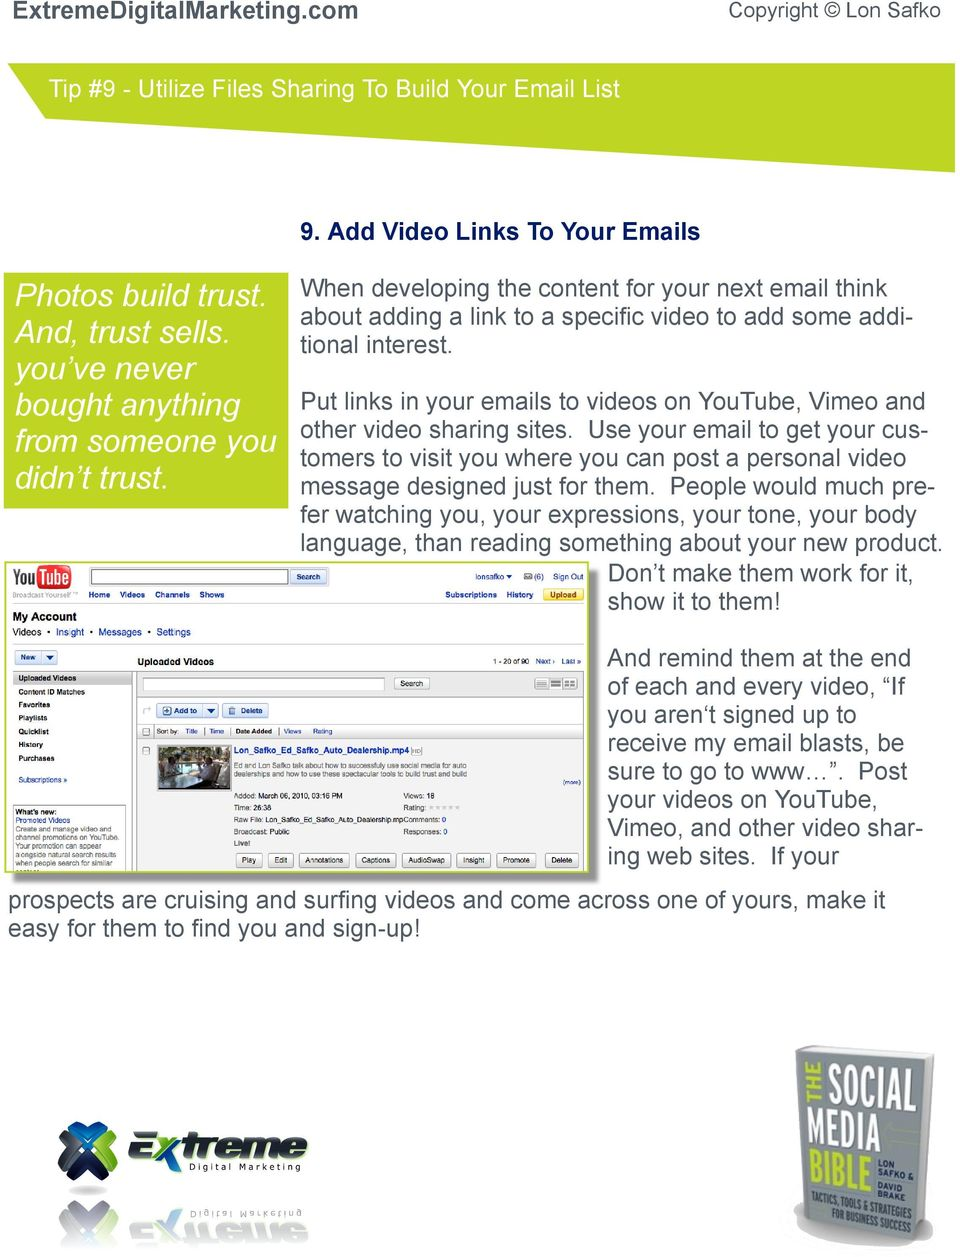 Put links in your emails to videos on YouTube, Vimeo and other video sharing sites.